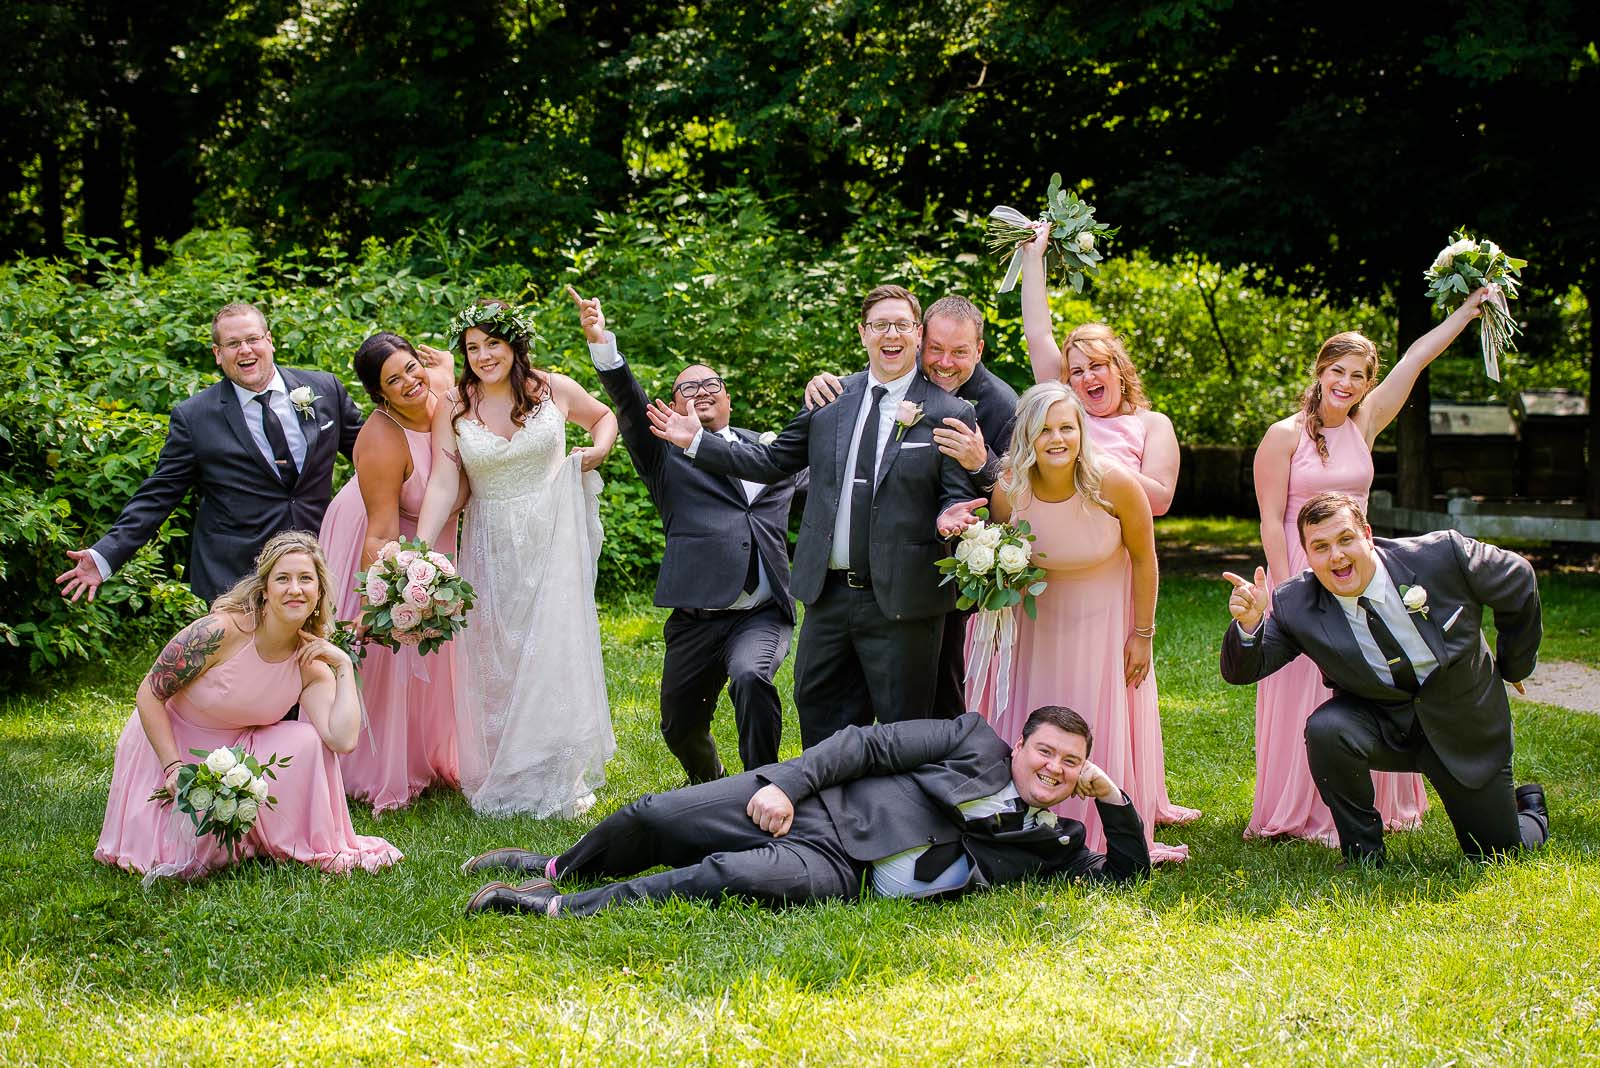 Eric_and_Christy_Photography_Blog_2018_Wed_moments-30